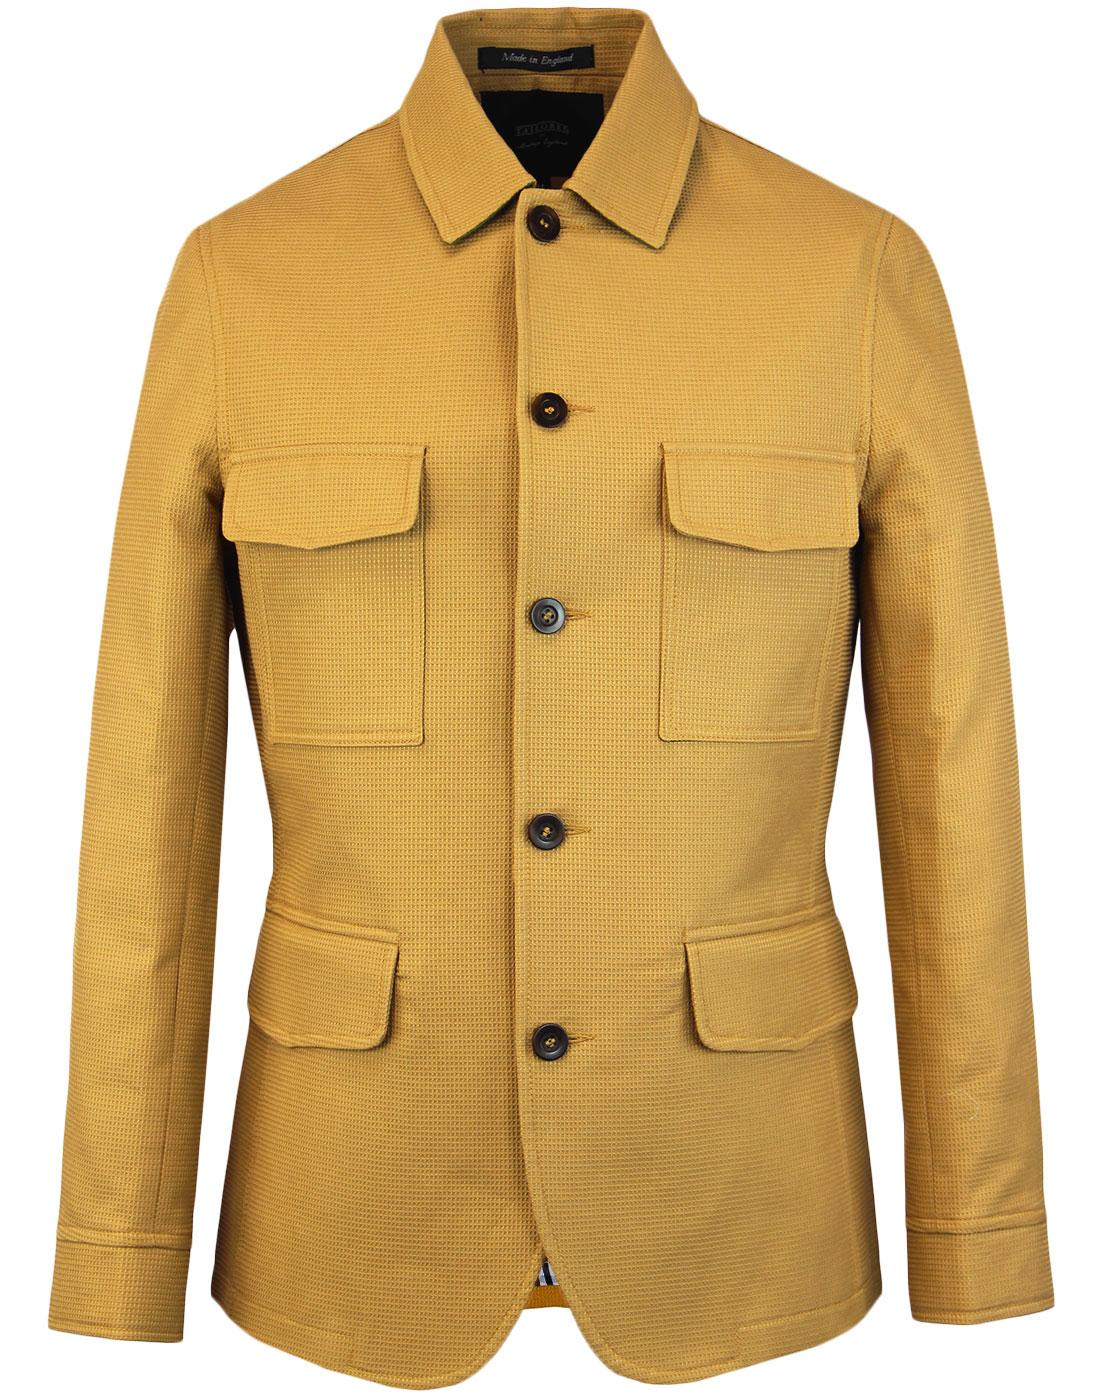 Bakerboy MADCAP ENGLAND Made in England Jacket (T)